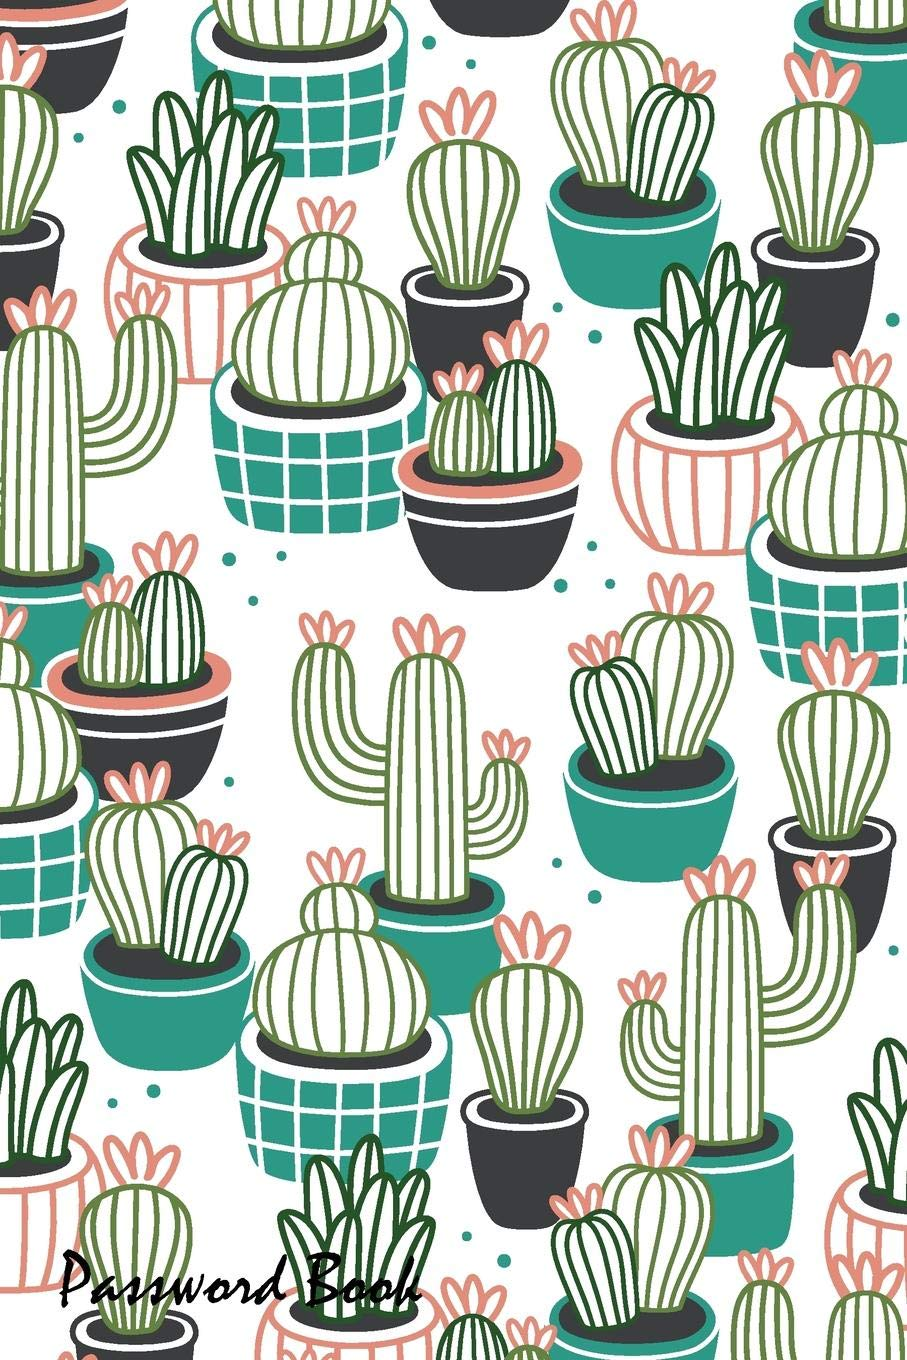 Image OfPassword Book: Include Alphabetical Index With Cactus Pots Seamless Pattern